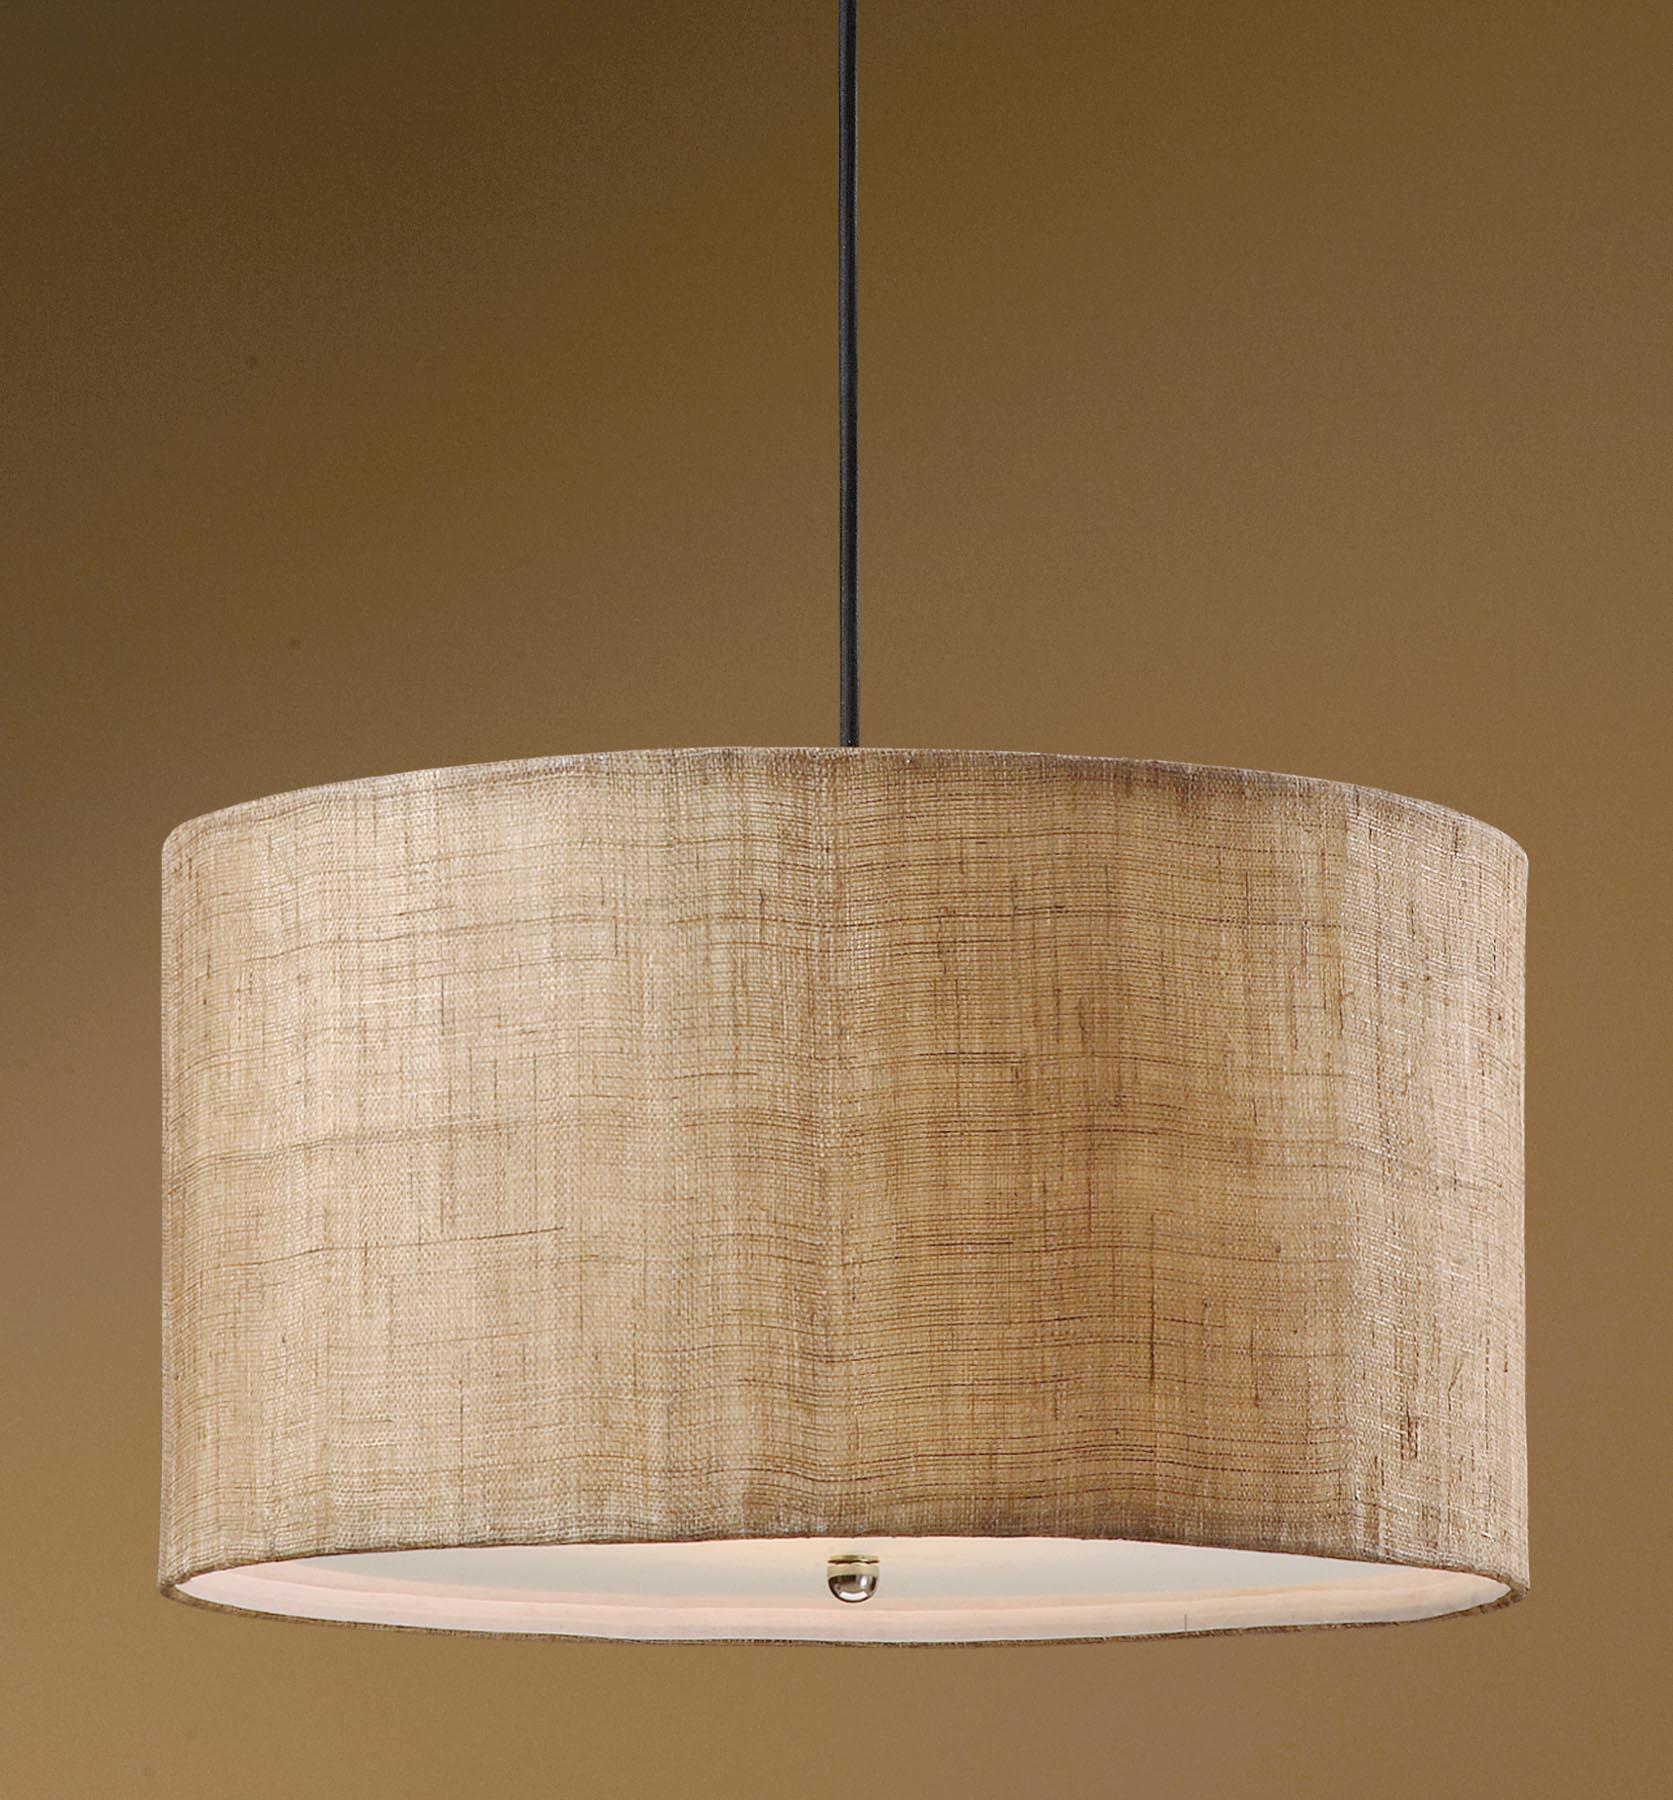 Uttermost Lighting Fixtures Dafina 3 Light Hanging Shade - Item Number: 21933